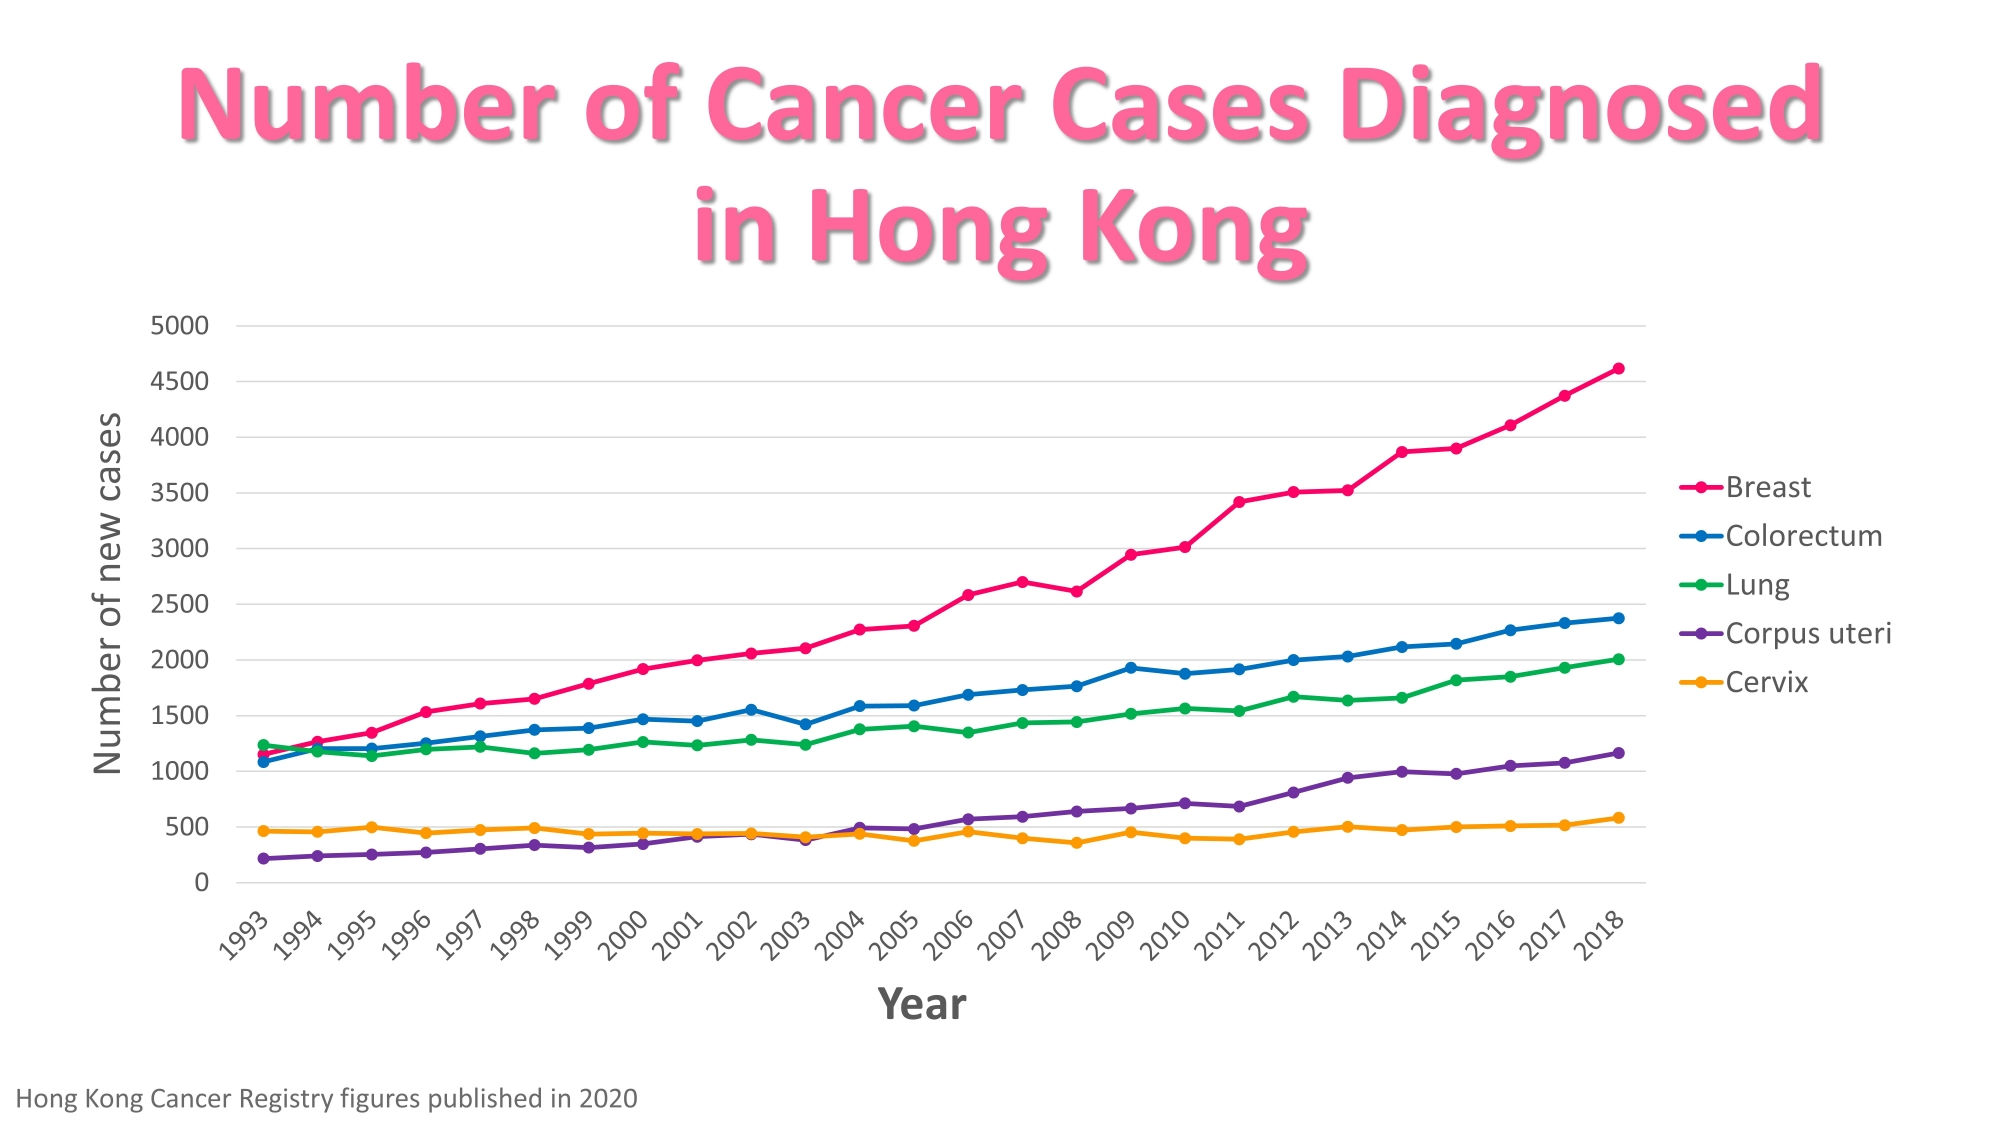 Self Photos / Files - 02. Number of Cancer Cases Diagnosed in Hong Kong